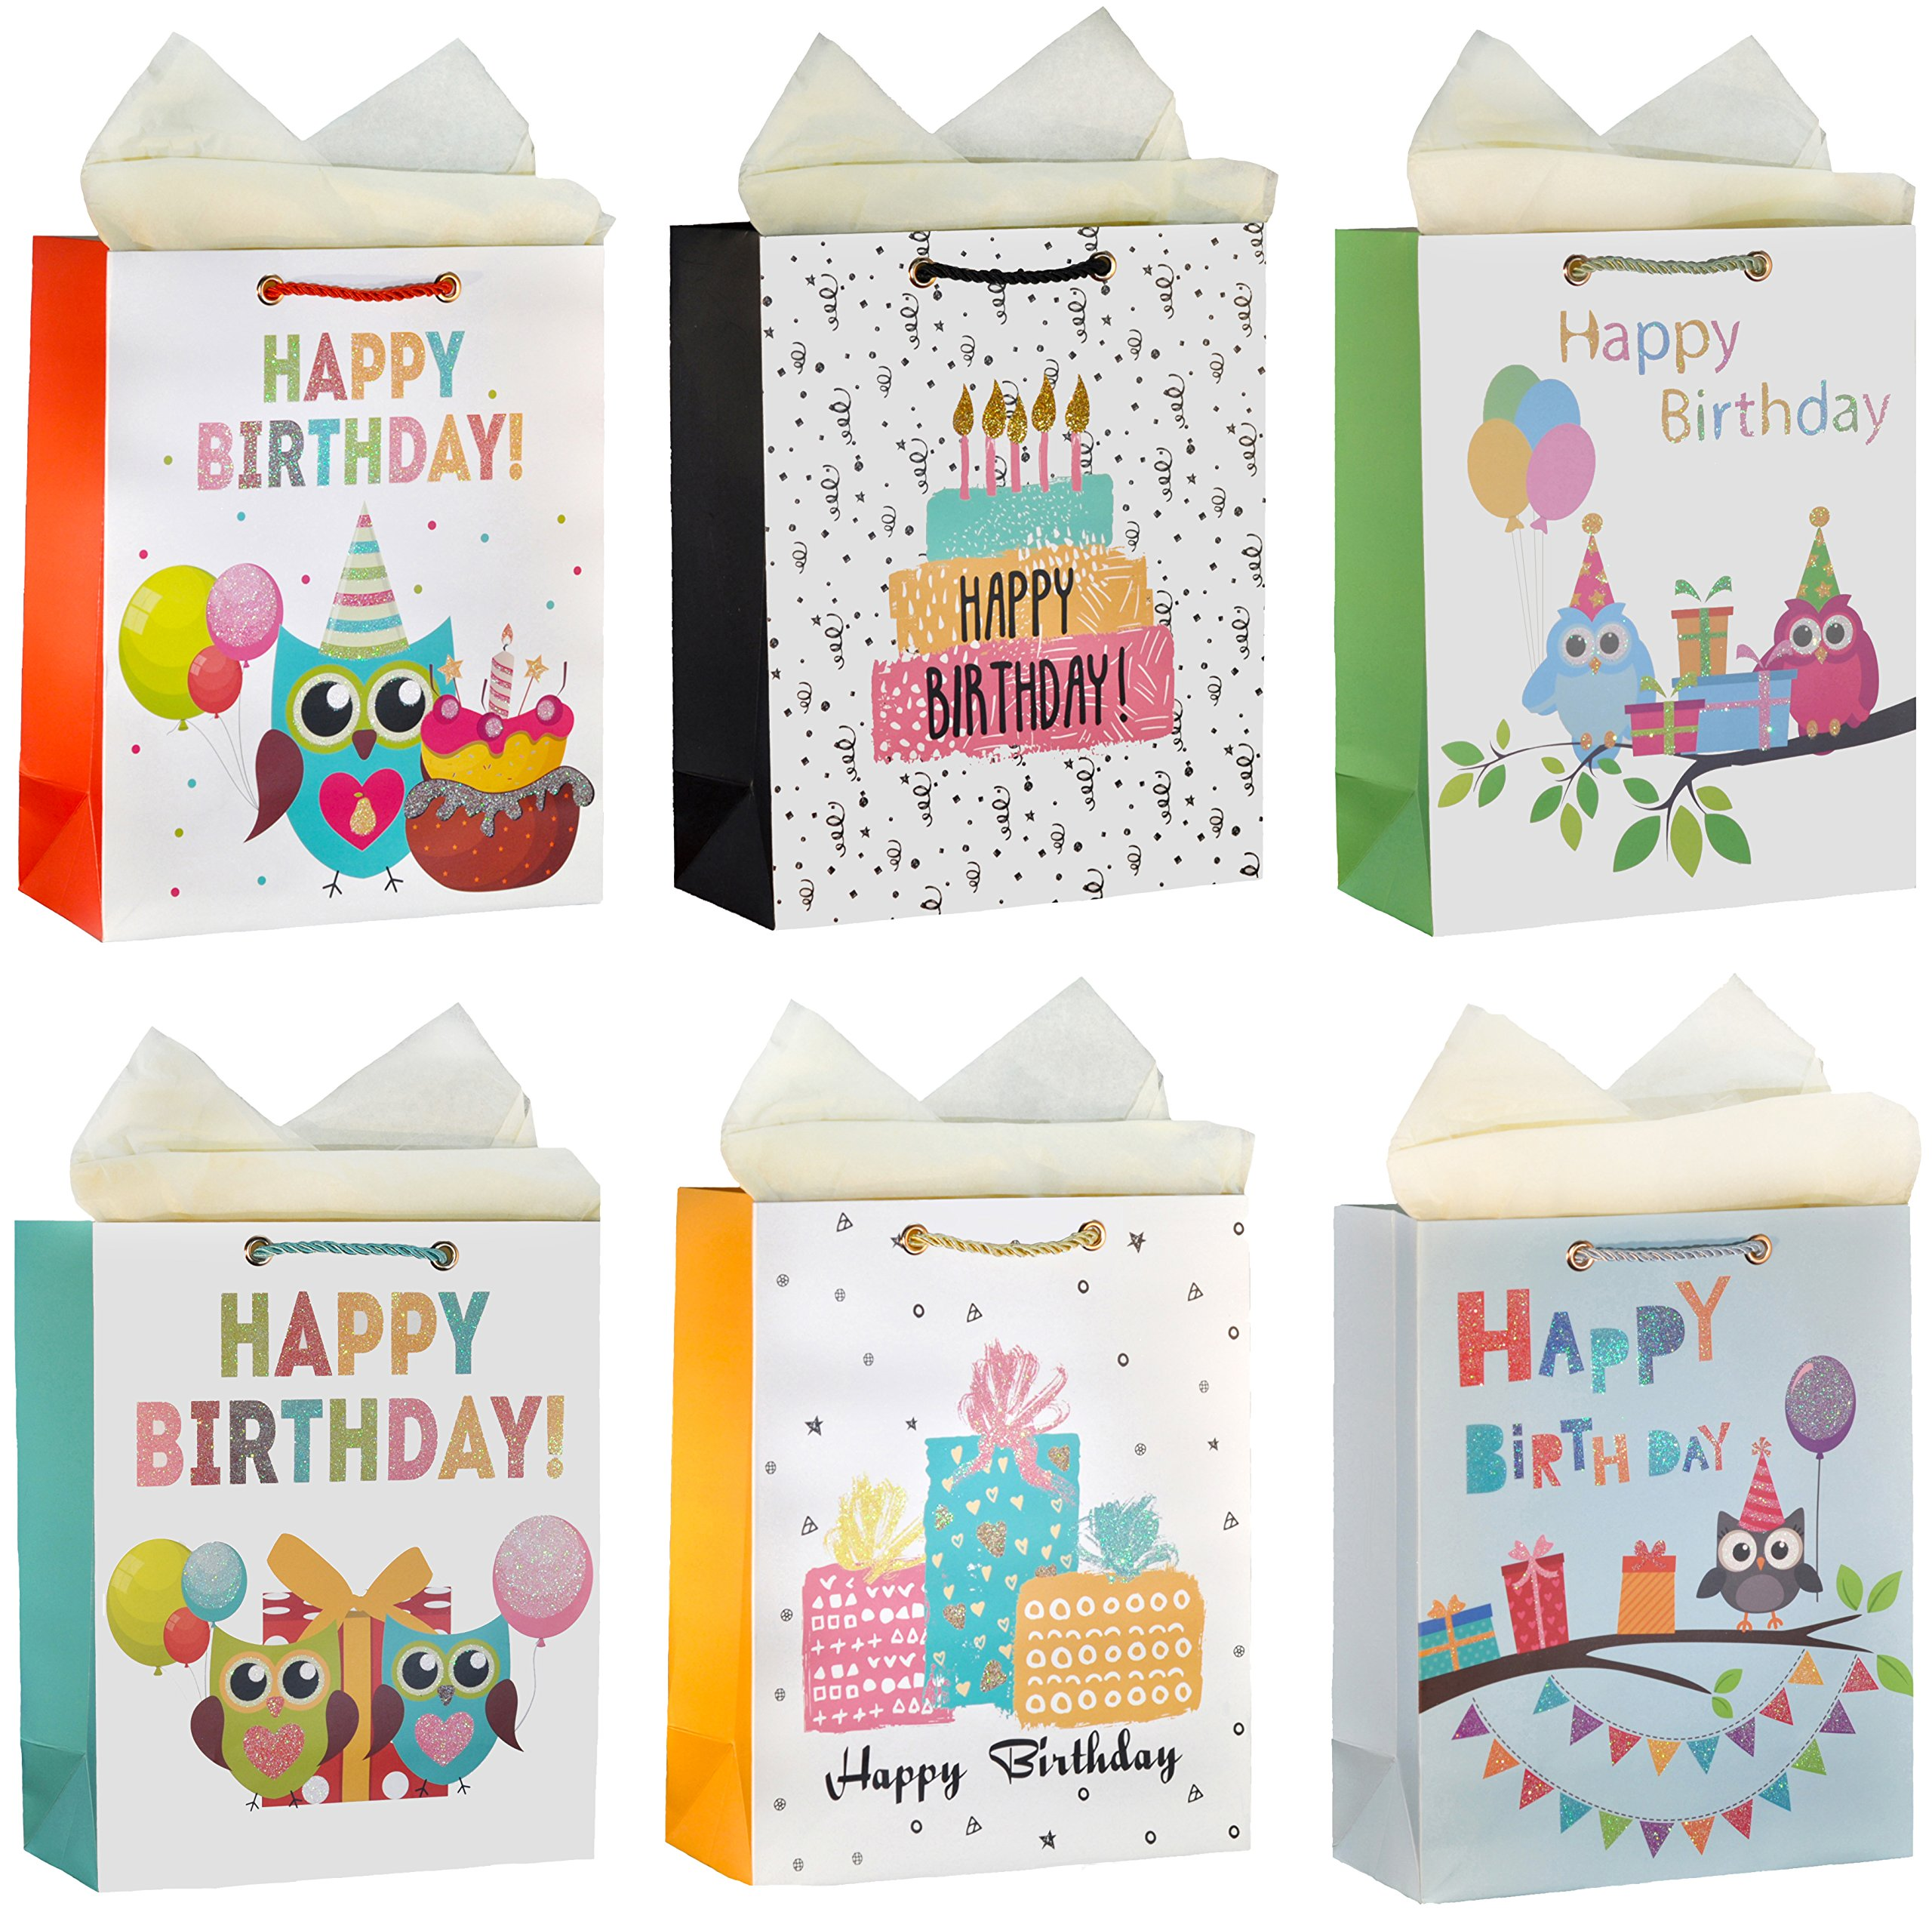 ViiGift Premium Large Birthday Gift Bags with Glitter and Tissue Papers, 6 Pack …